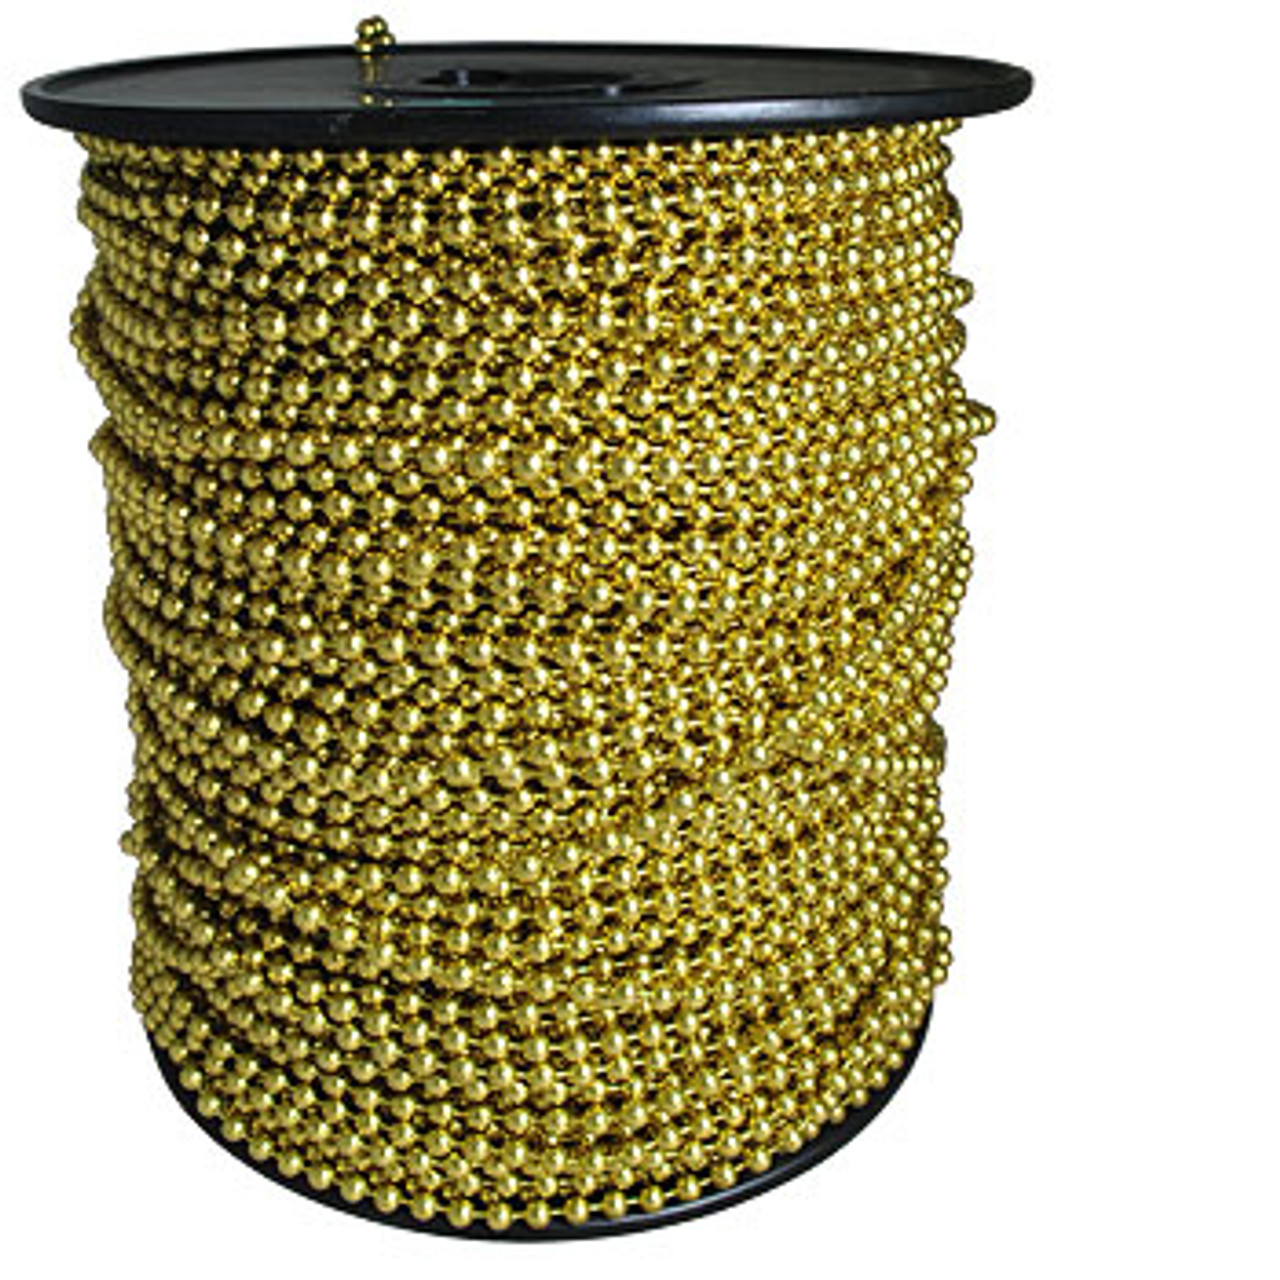 Brass Plated Steel #6 Size Inc. 10 Foot Length Ball Chain /& 10 Matching Connectors Ball Chain Manufacturing Co